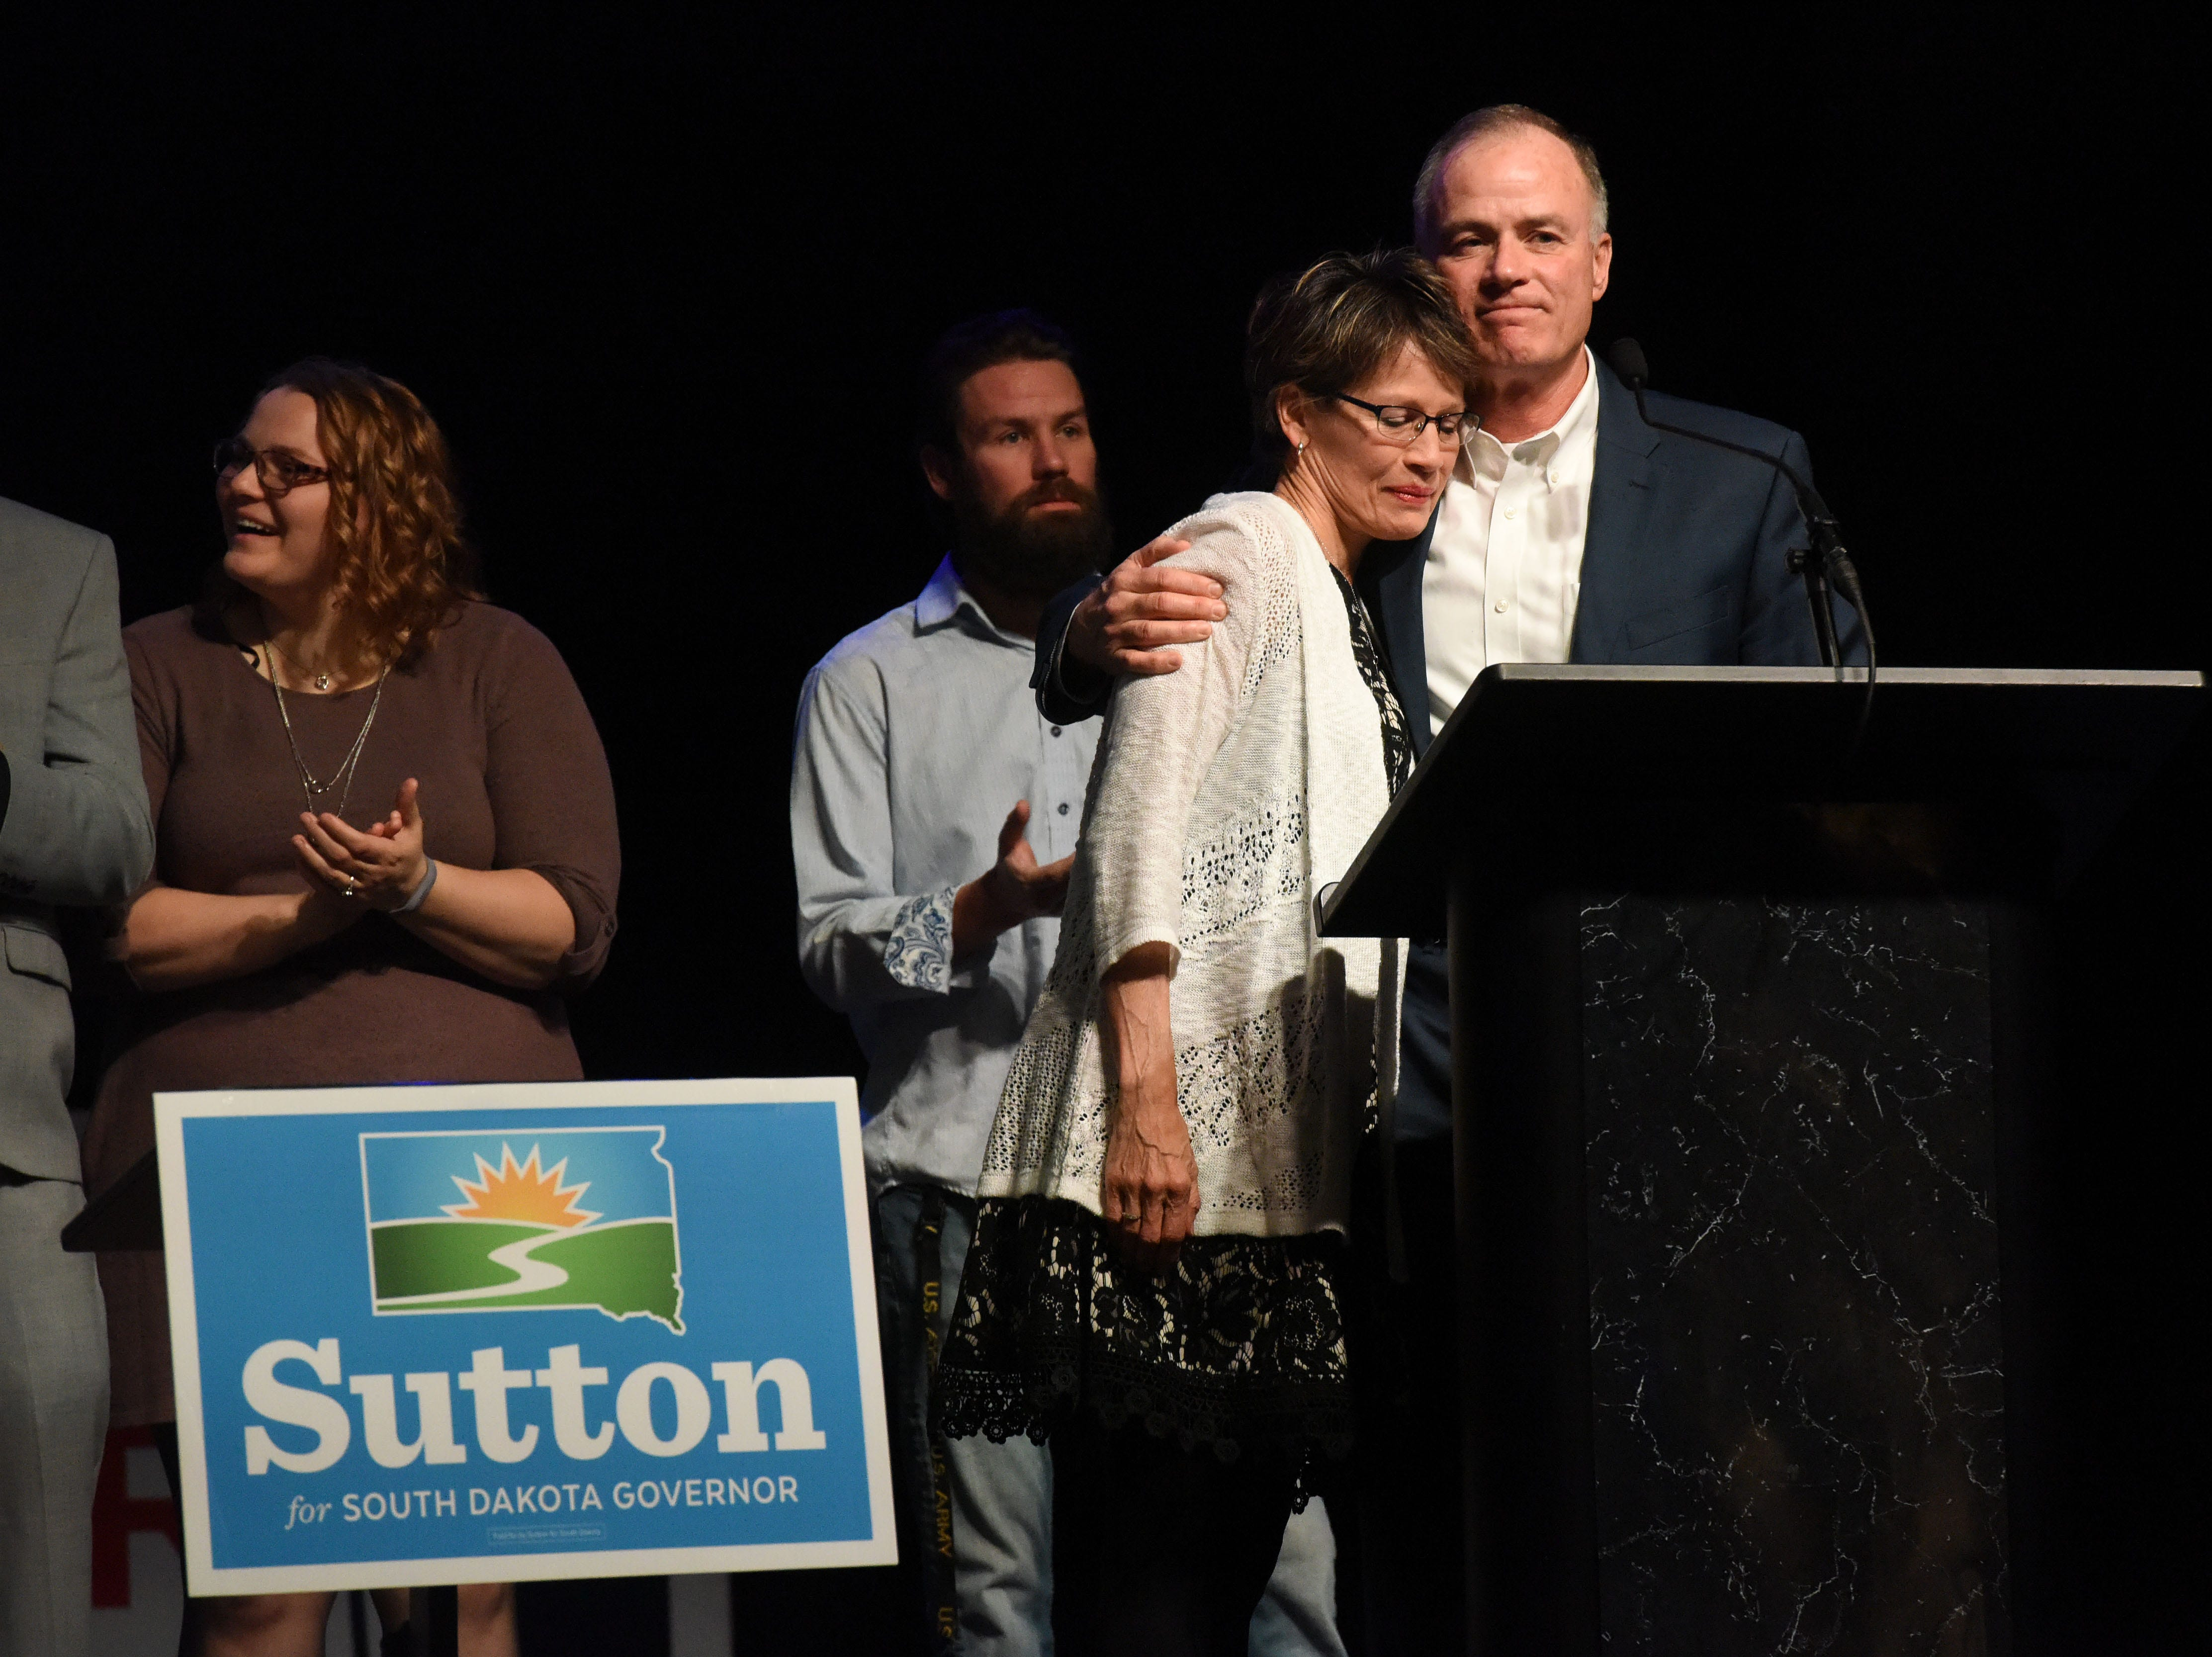 Tim Bjorkman hugs his wife while giving his concession speech after losing the race to Dusty Johnson, Tuesday, Nov. 6, 2018 at The District in Sioux Falls, S.D.